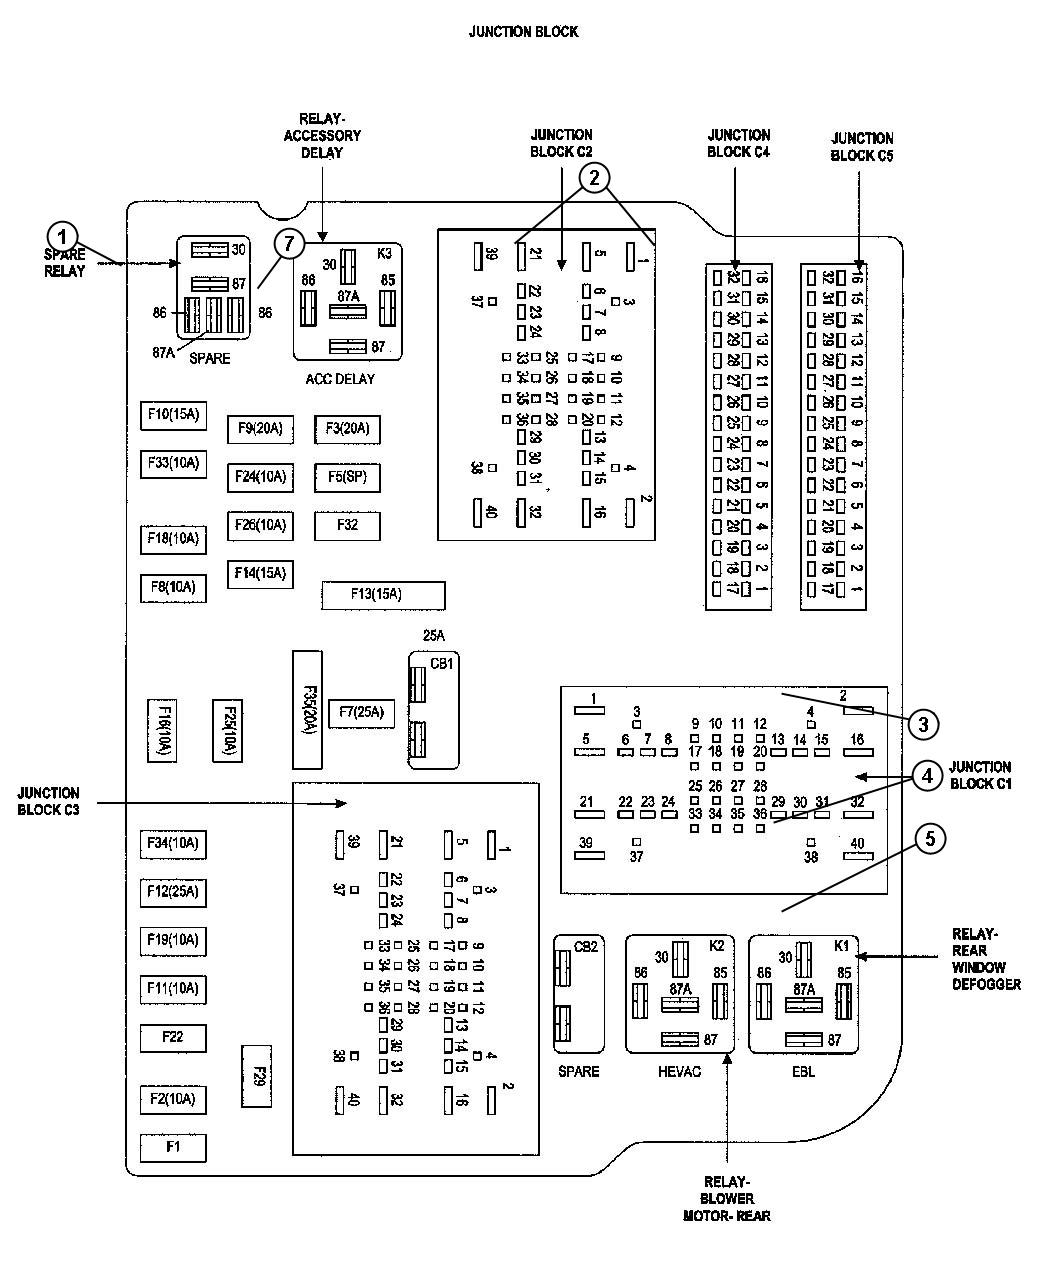 [DIAGRAM] Chrysler Town And Country 2010 Fuse And Relay